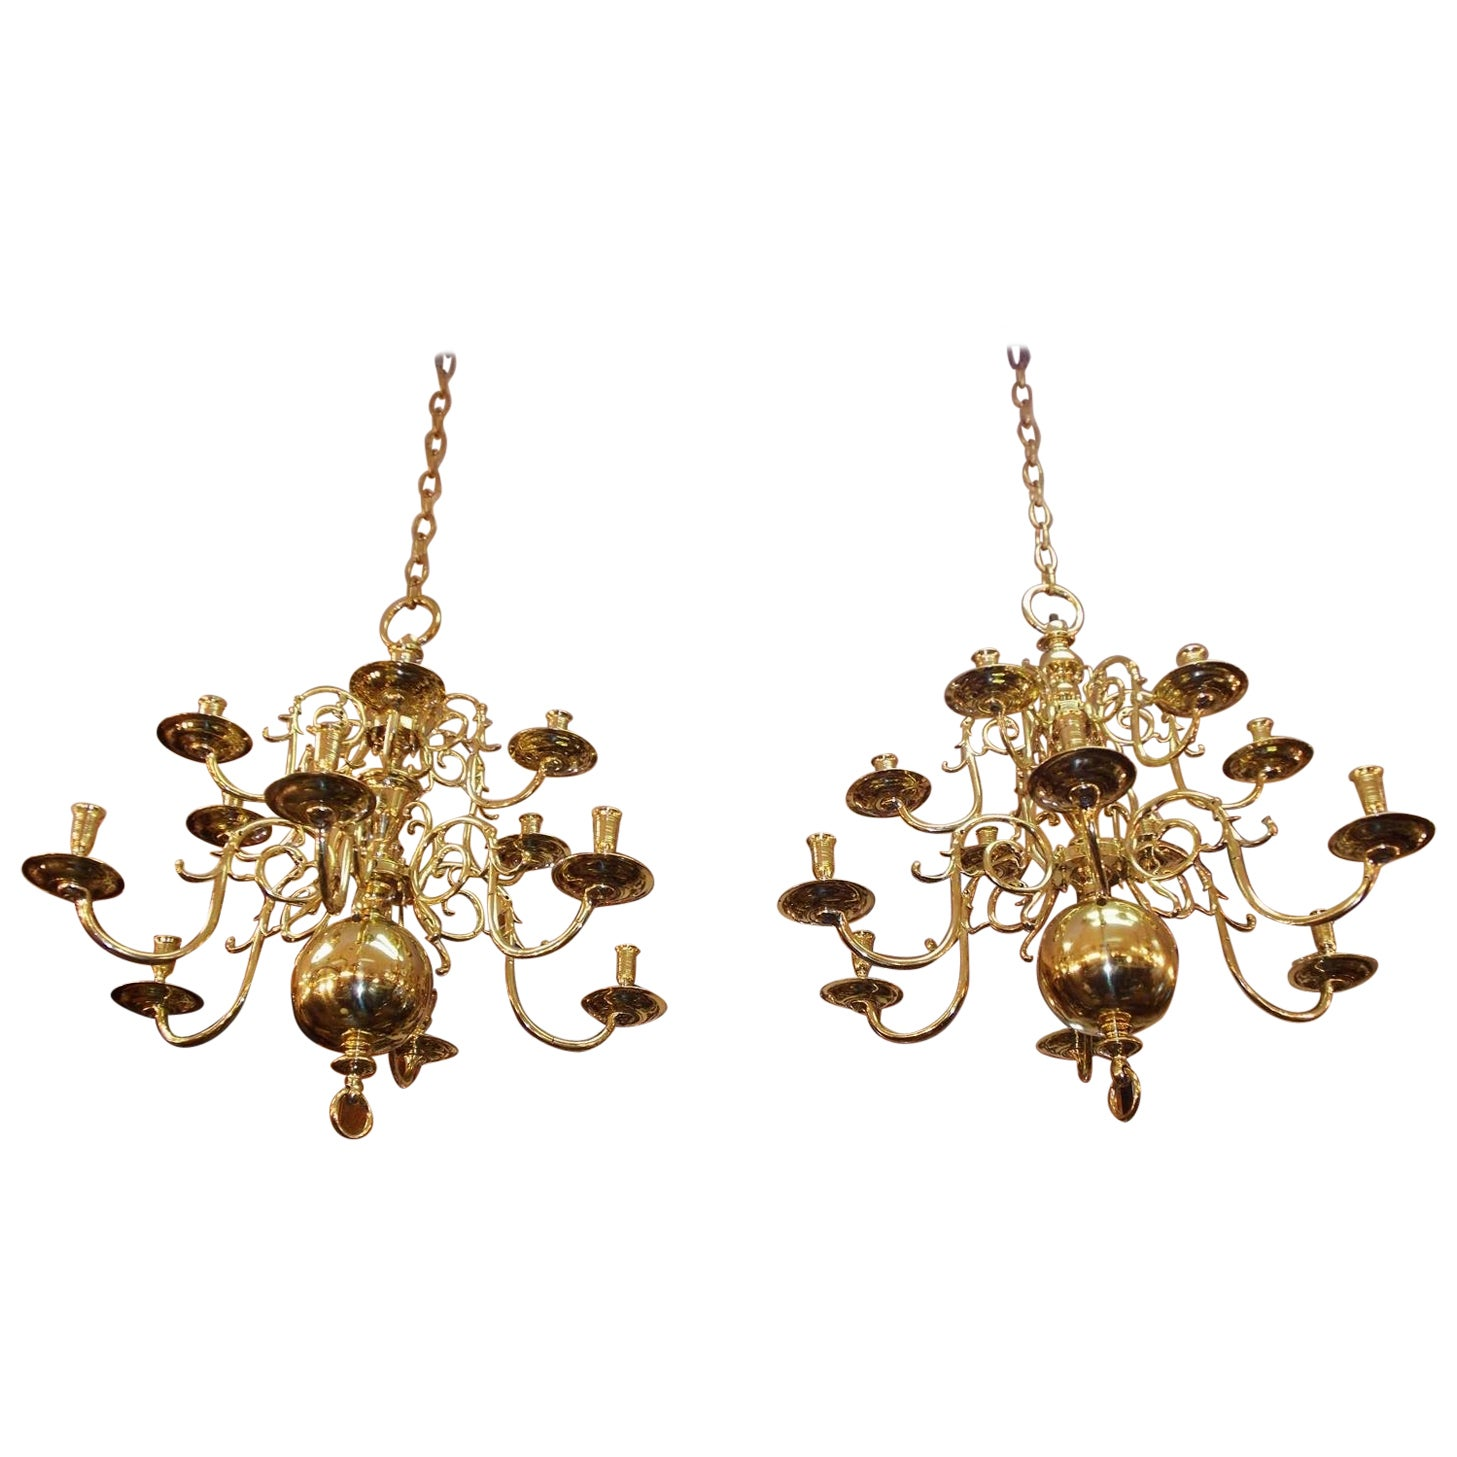 Pair of Dutch Colonial Two-Tiered Bulbous and Scrolled Chandeliers, Circa 1750